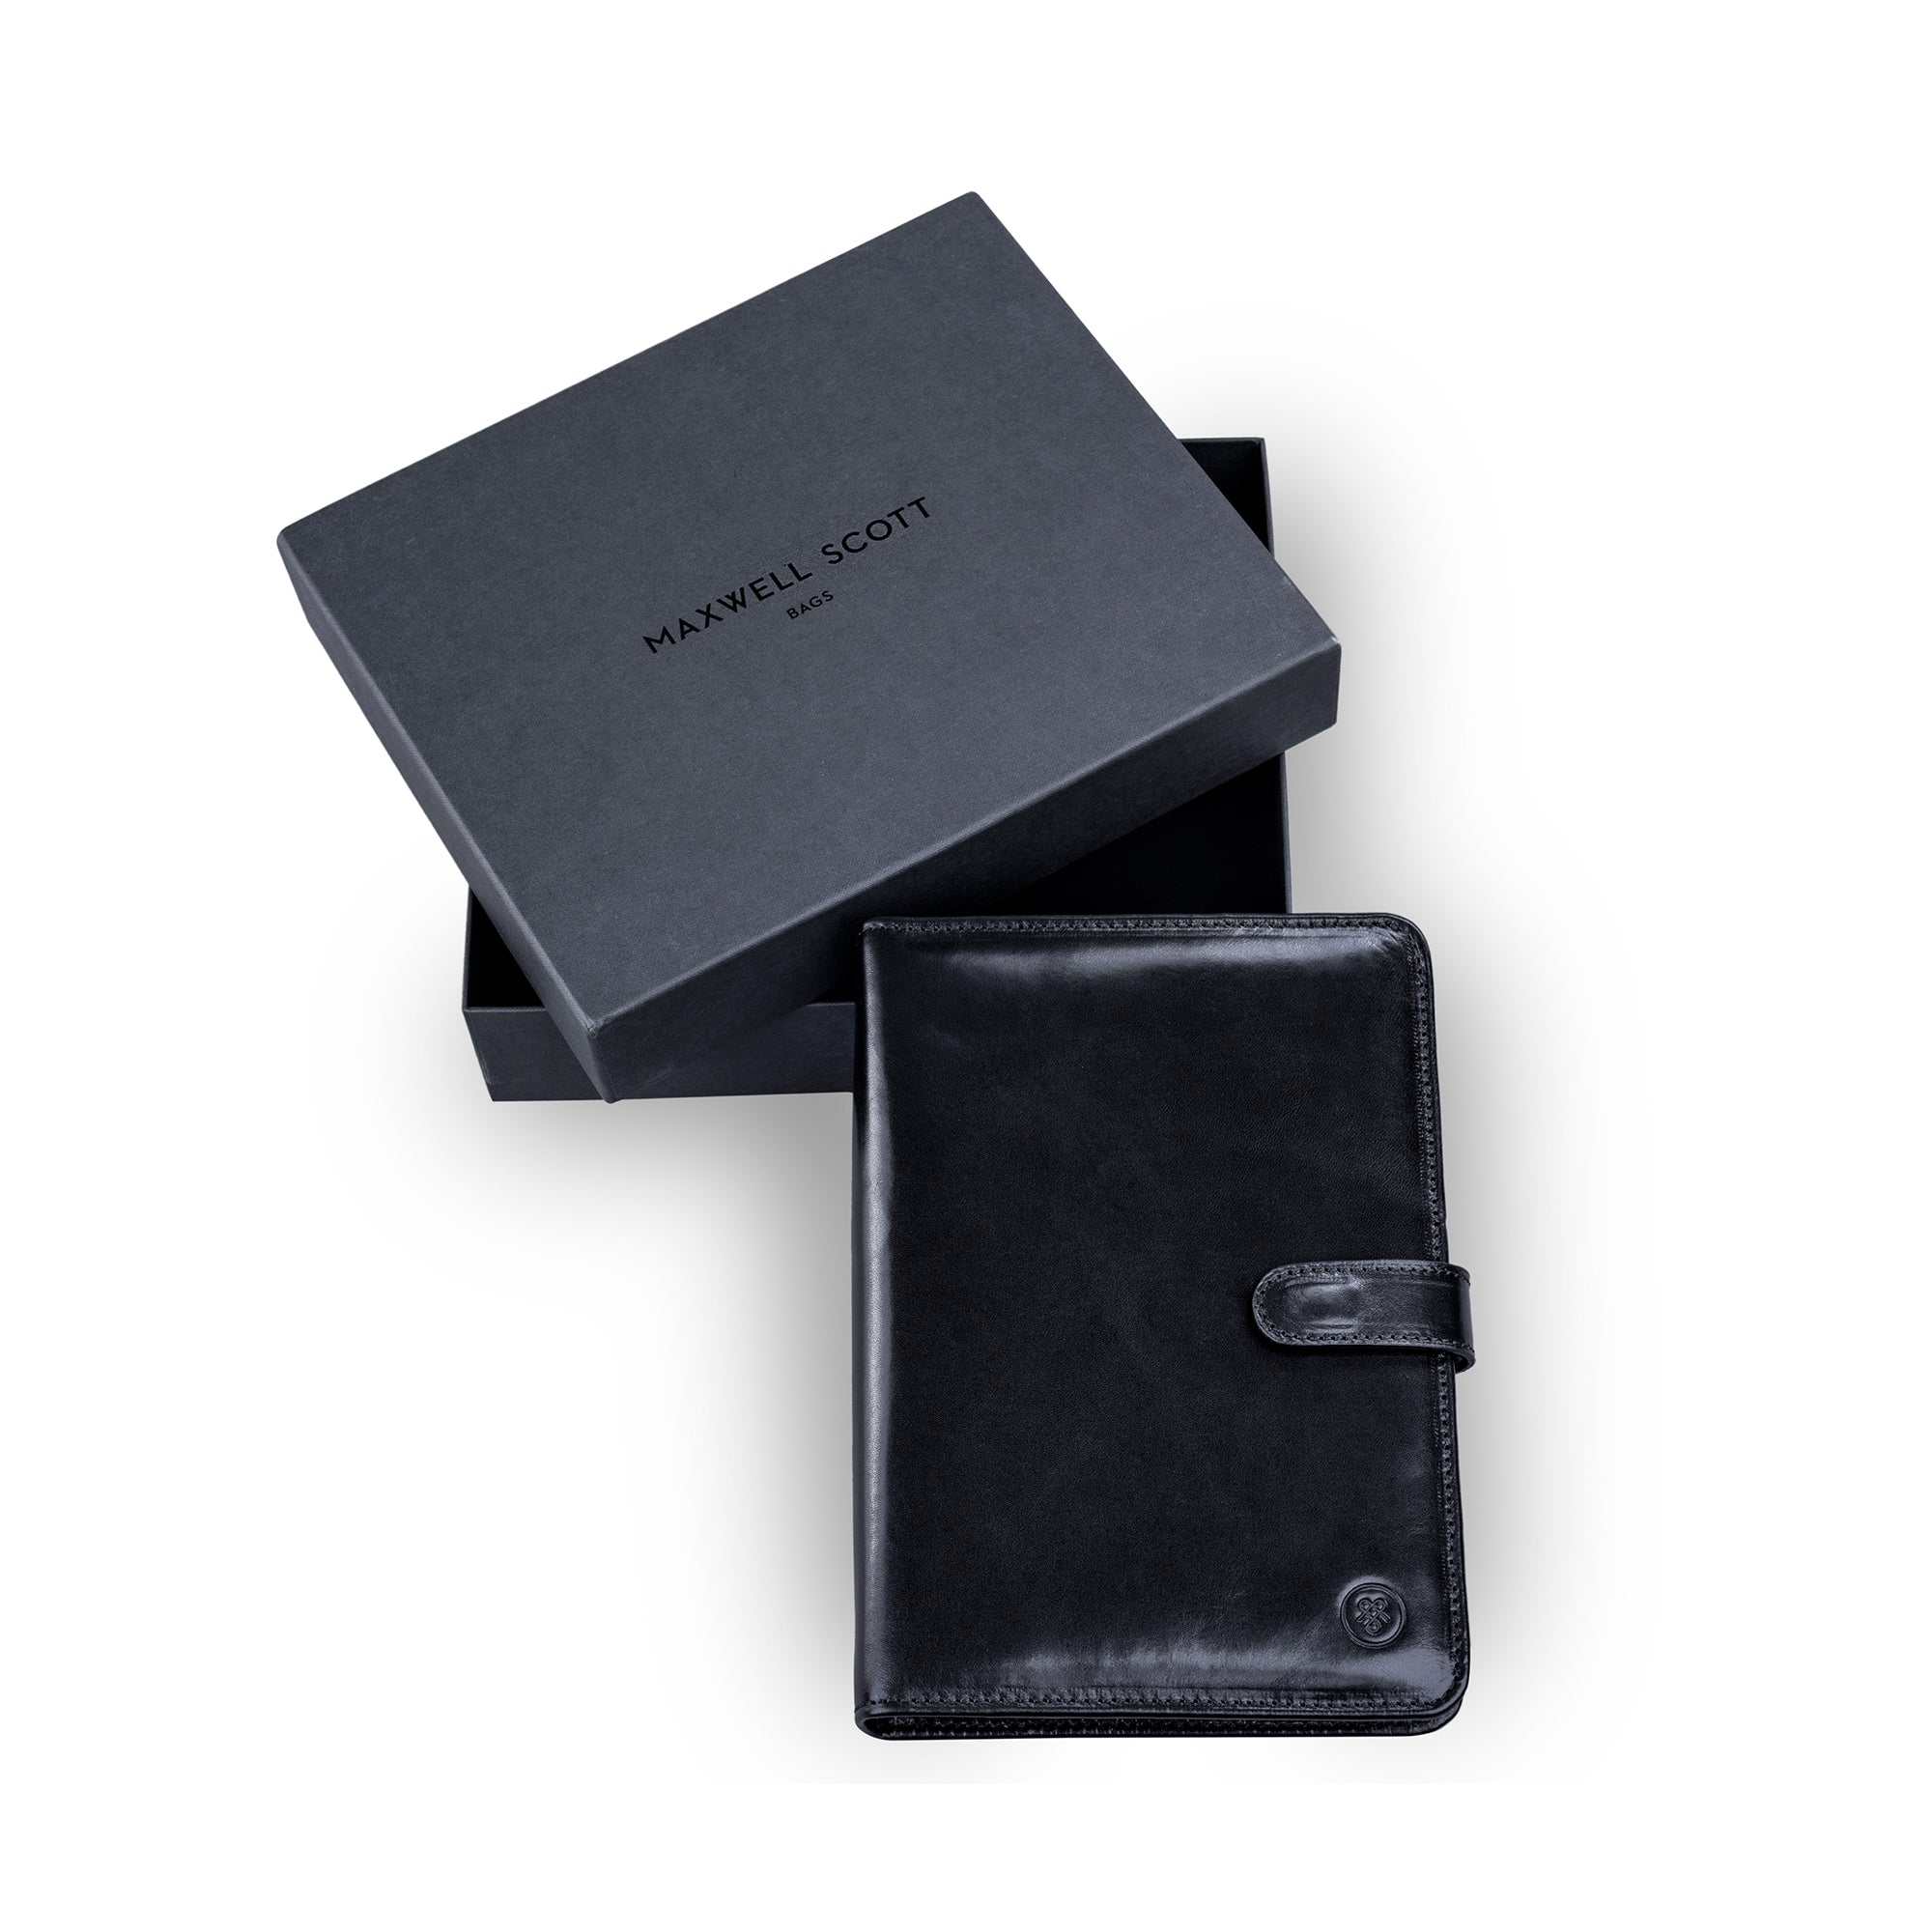 Image 5 of the Black Leather Address Book